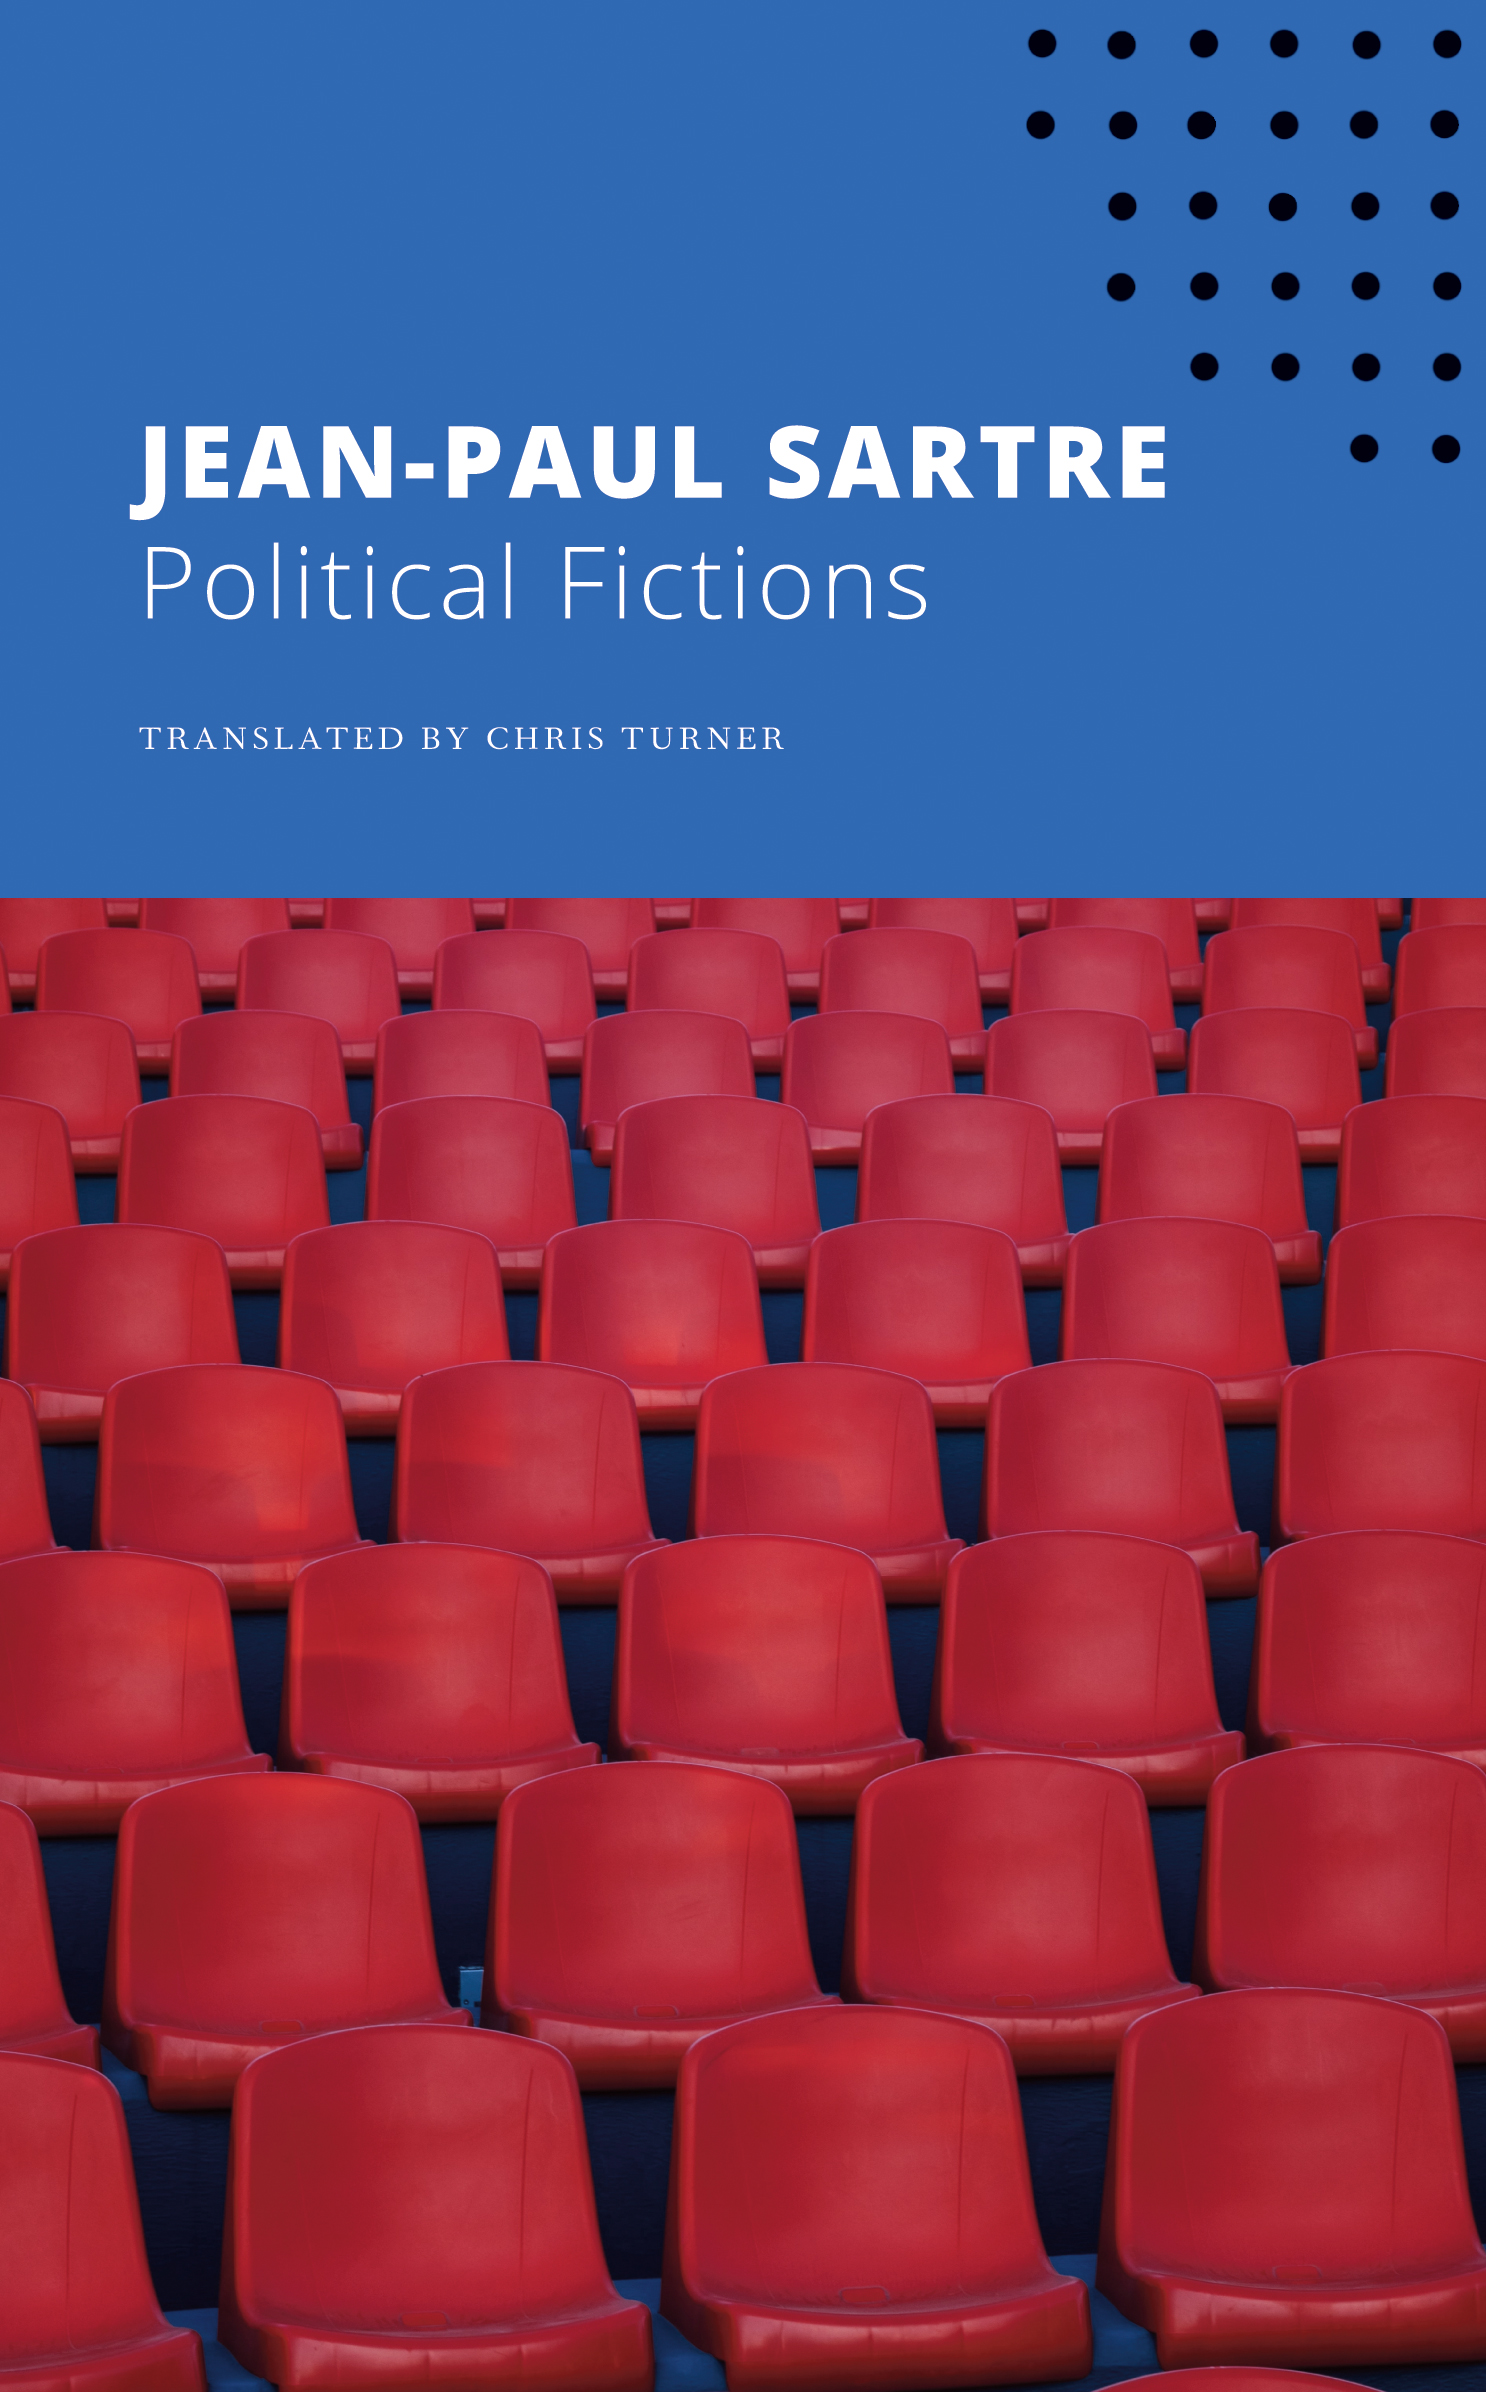 Political Fictions by Jean-Paul Sartre | Seagull Books